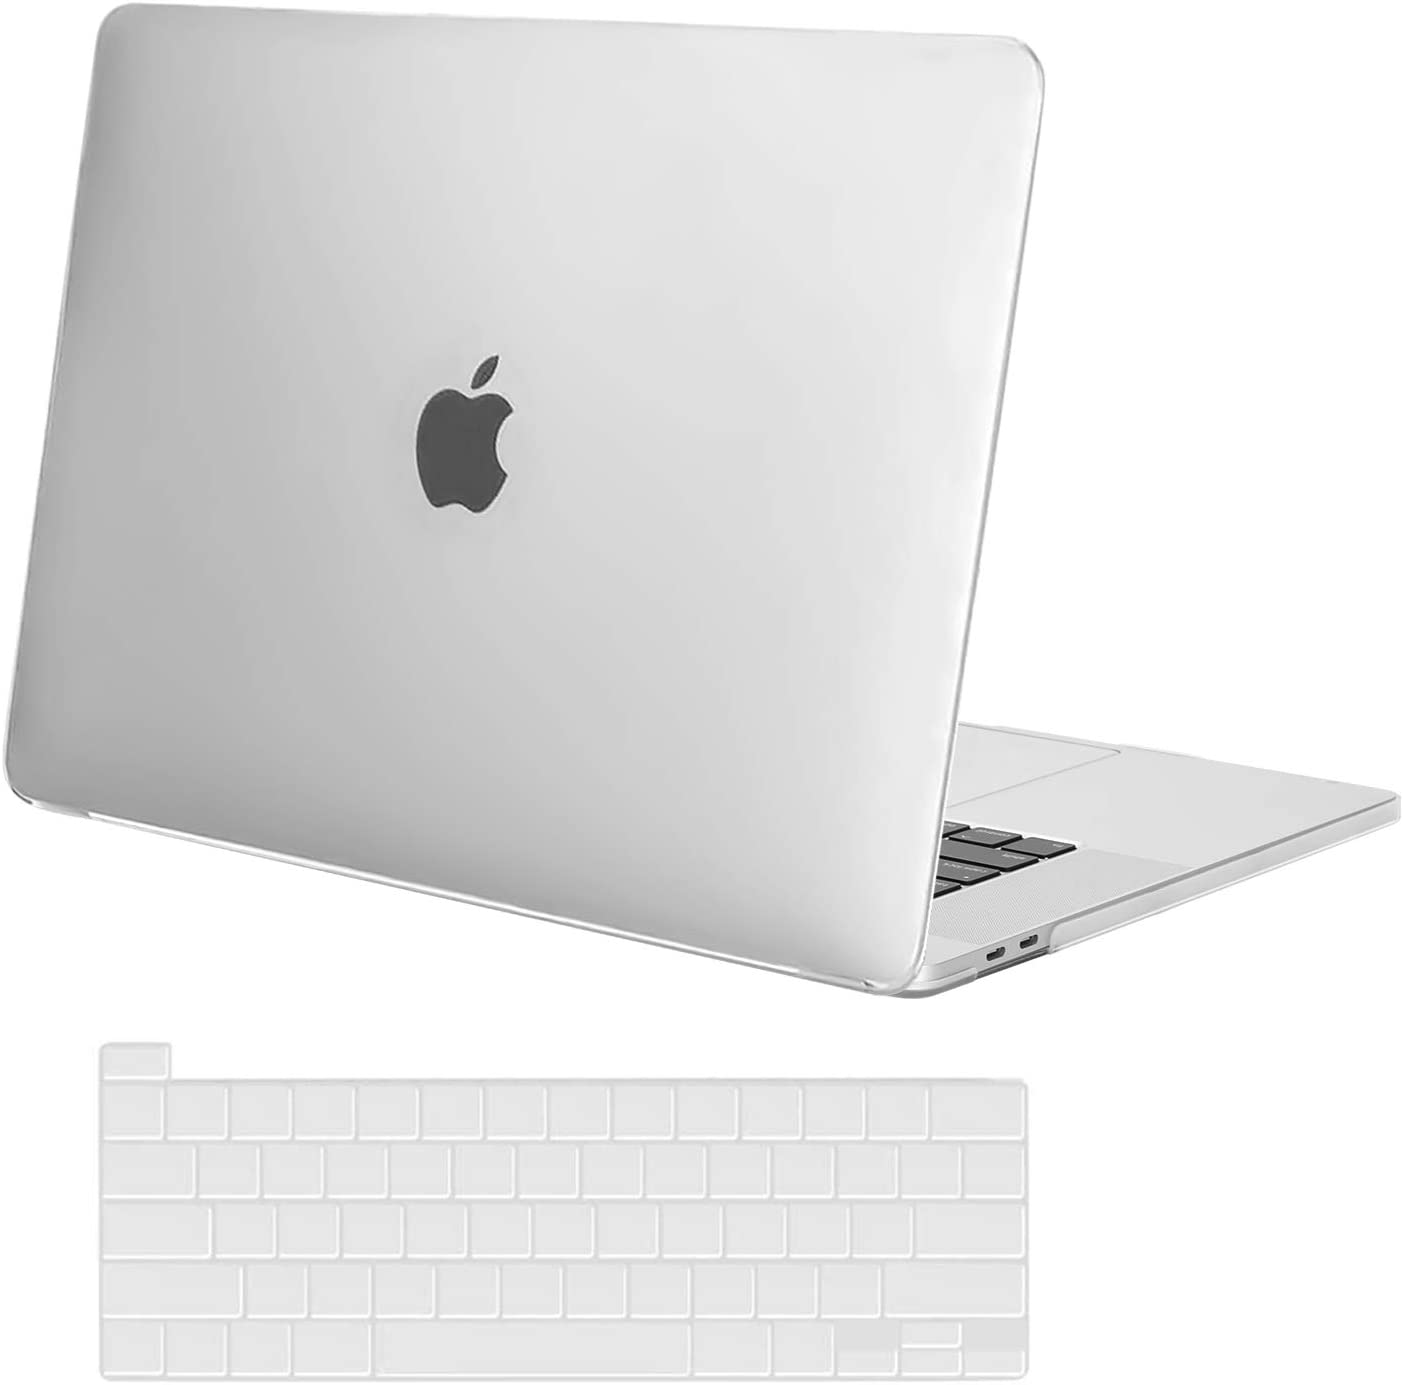 MOSISO MacBook Pro 16 inch Case 2019 Release A2141 with Touch Bar & Touch ID, Ultra Slim Protective Plastic Hard Shell Case & Keyboard Cover Skin Compatible with MacBook Pro 16 inch, Frost